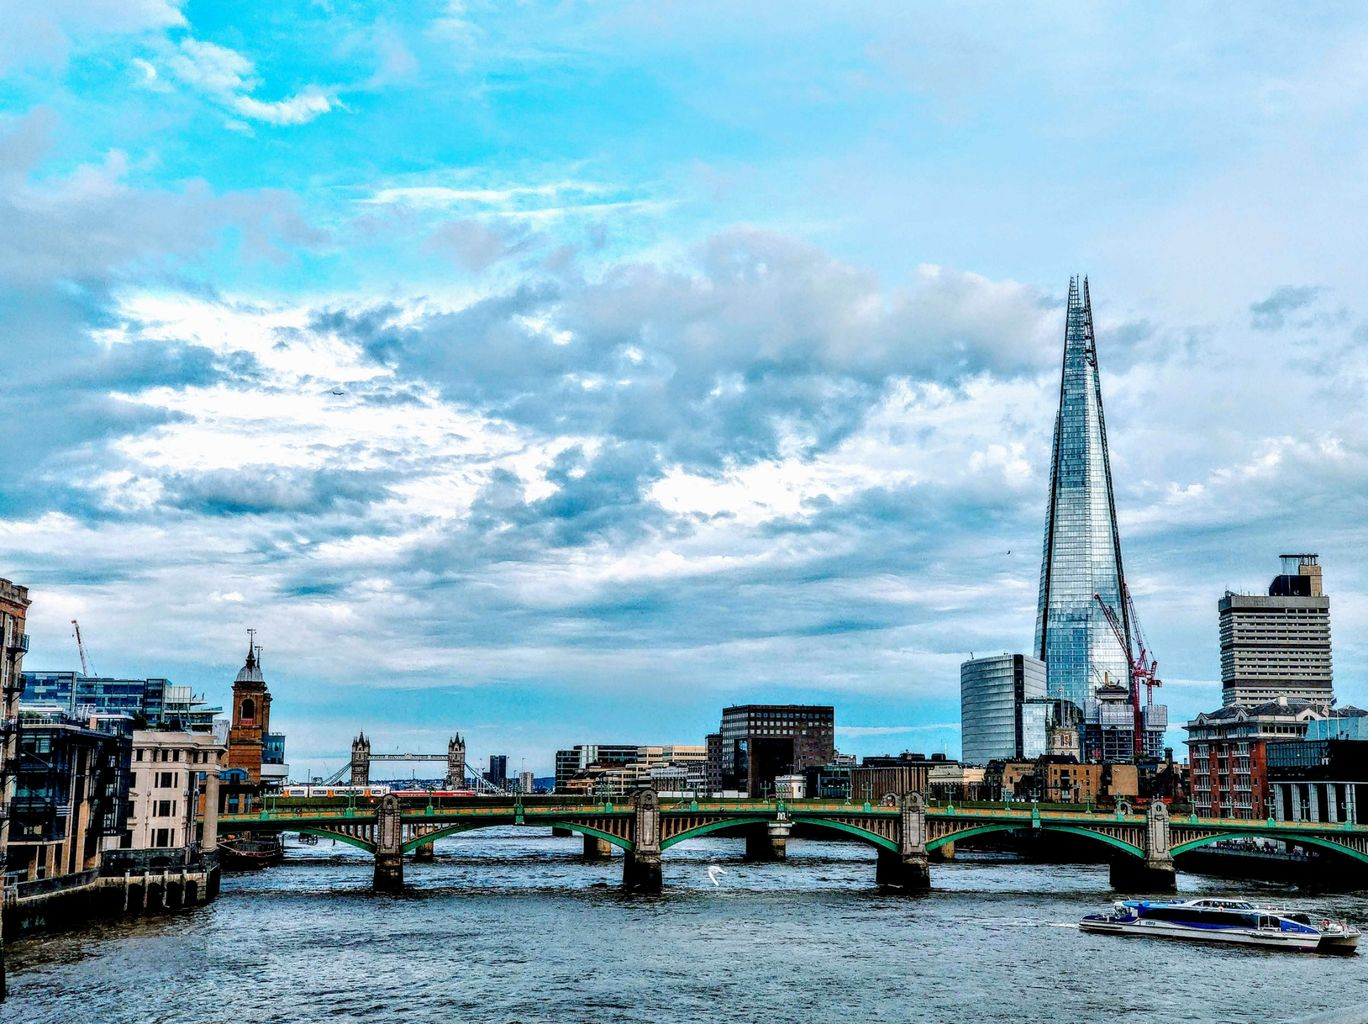 Photo of The Shard By Ishu Choudhary